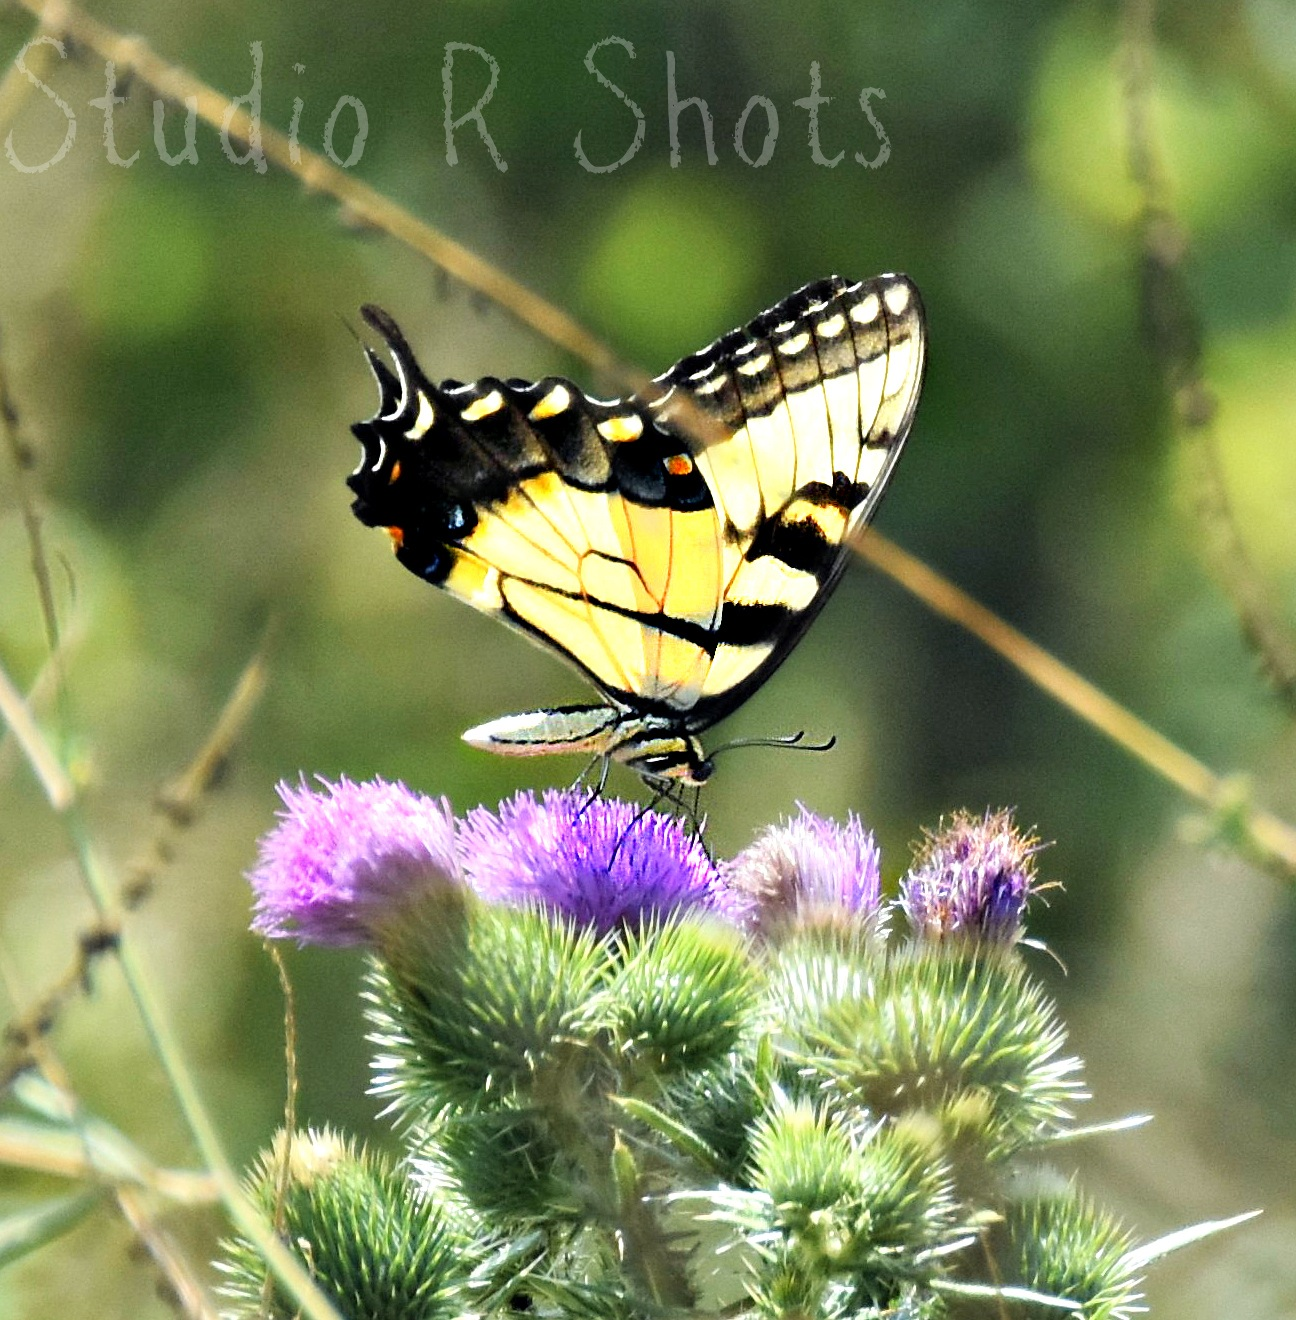 ButterFly KiSSes by Angie Peters Reszinski